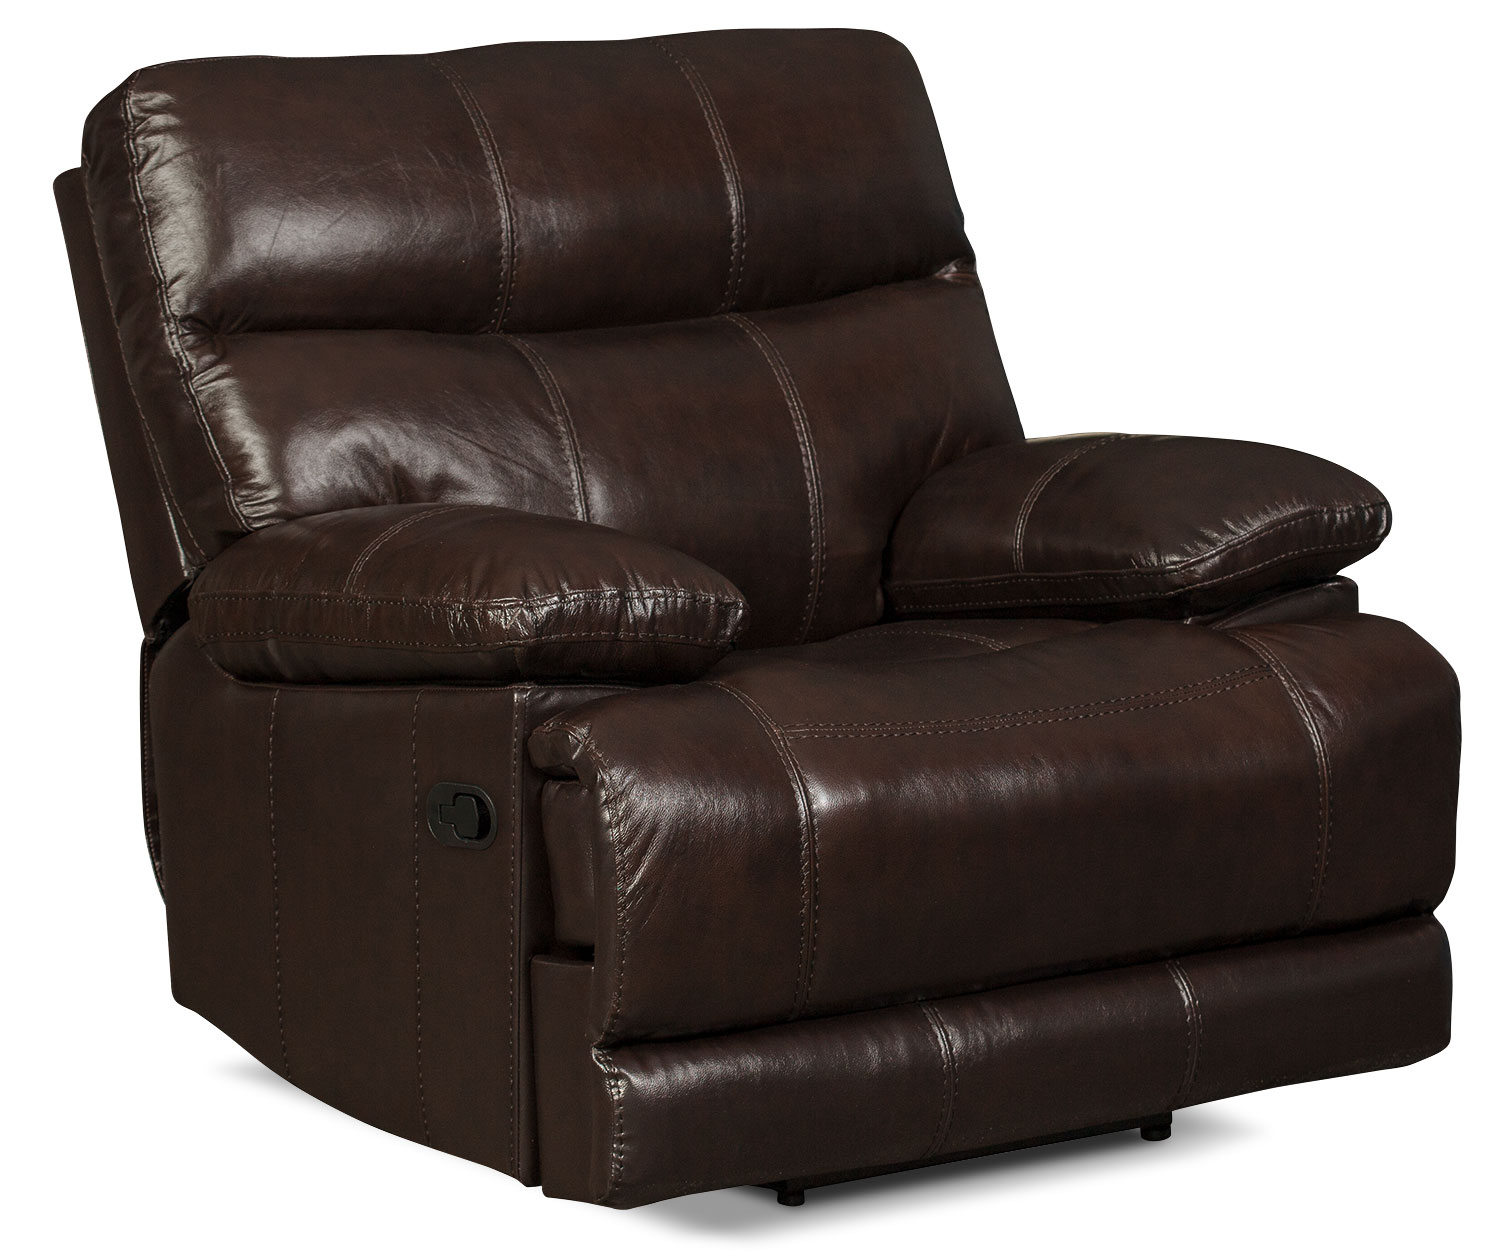 Living Room Furniture - Gavin Genuine Leather Reclining Chair – Brown